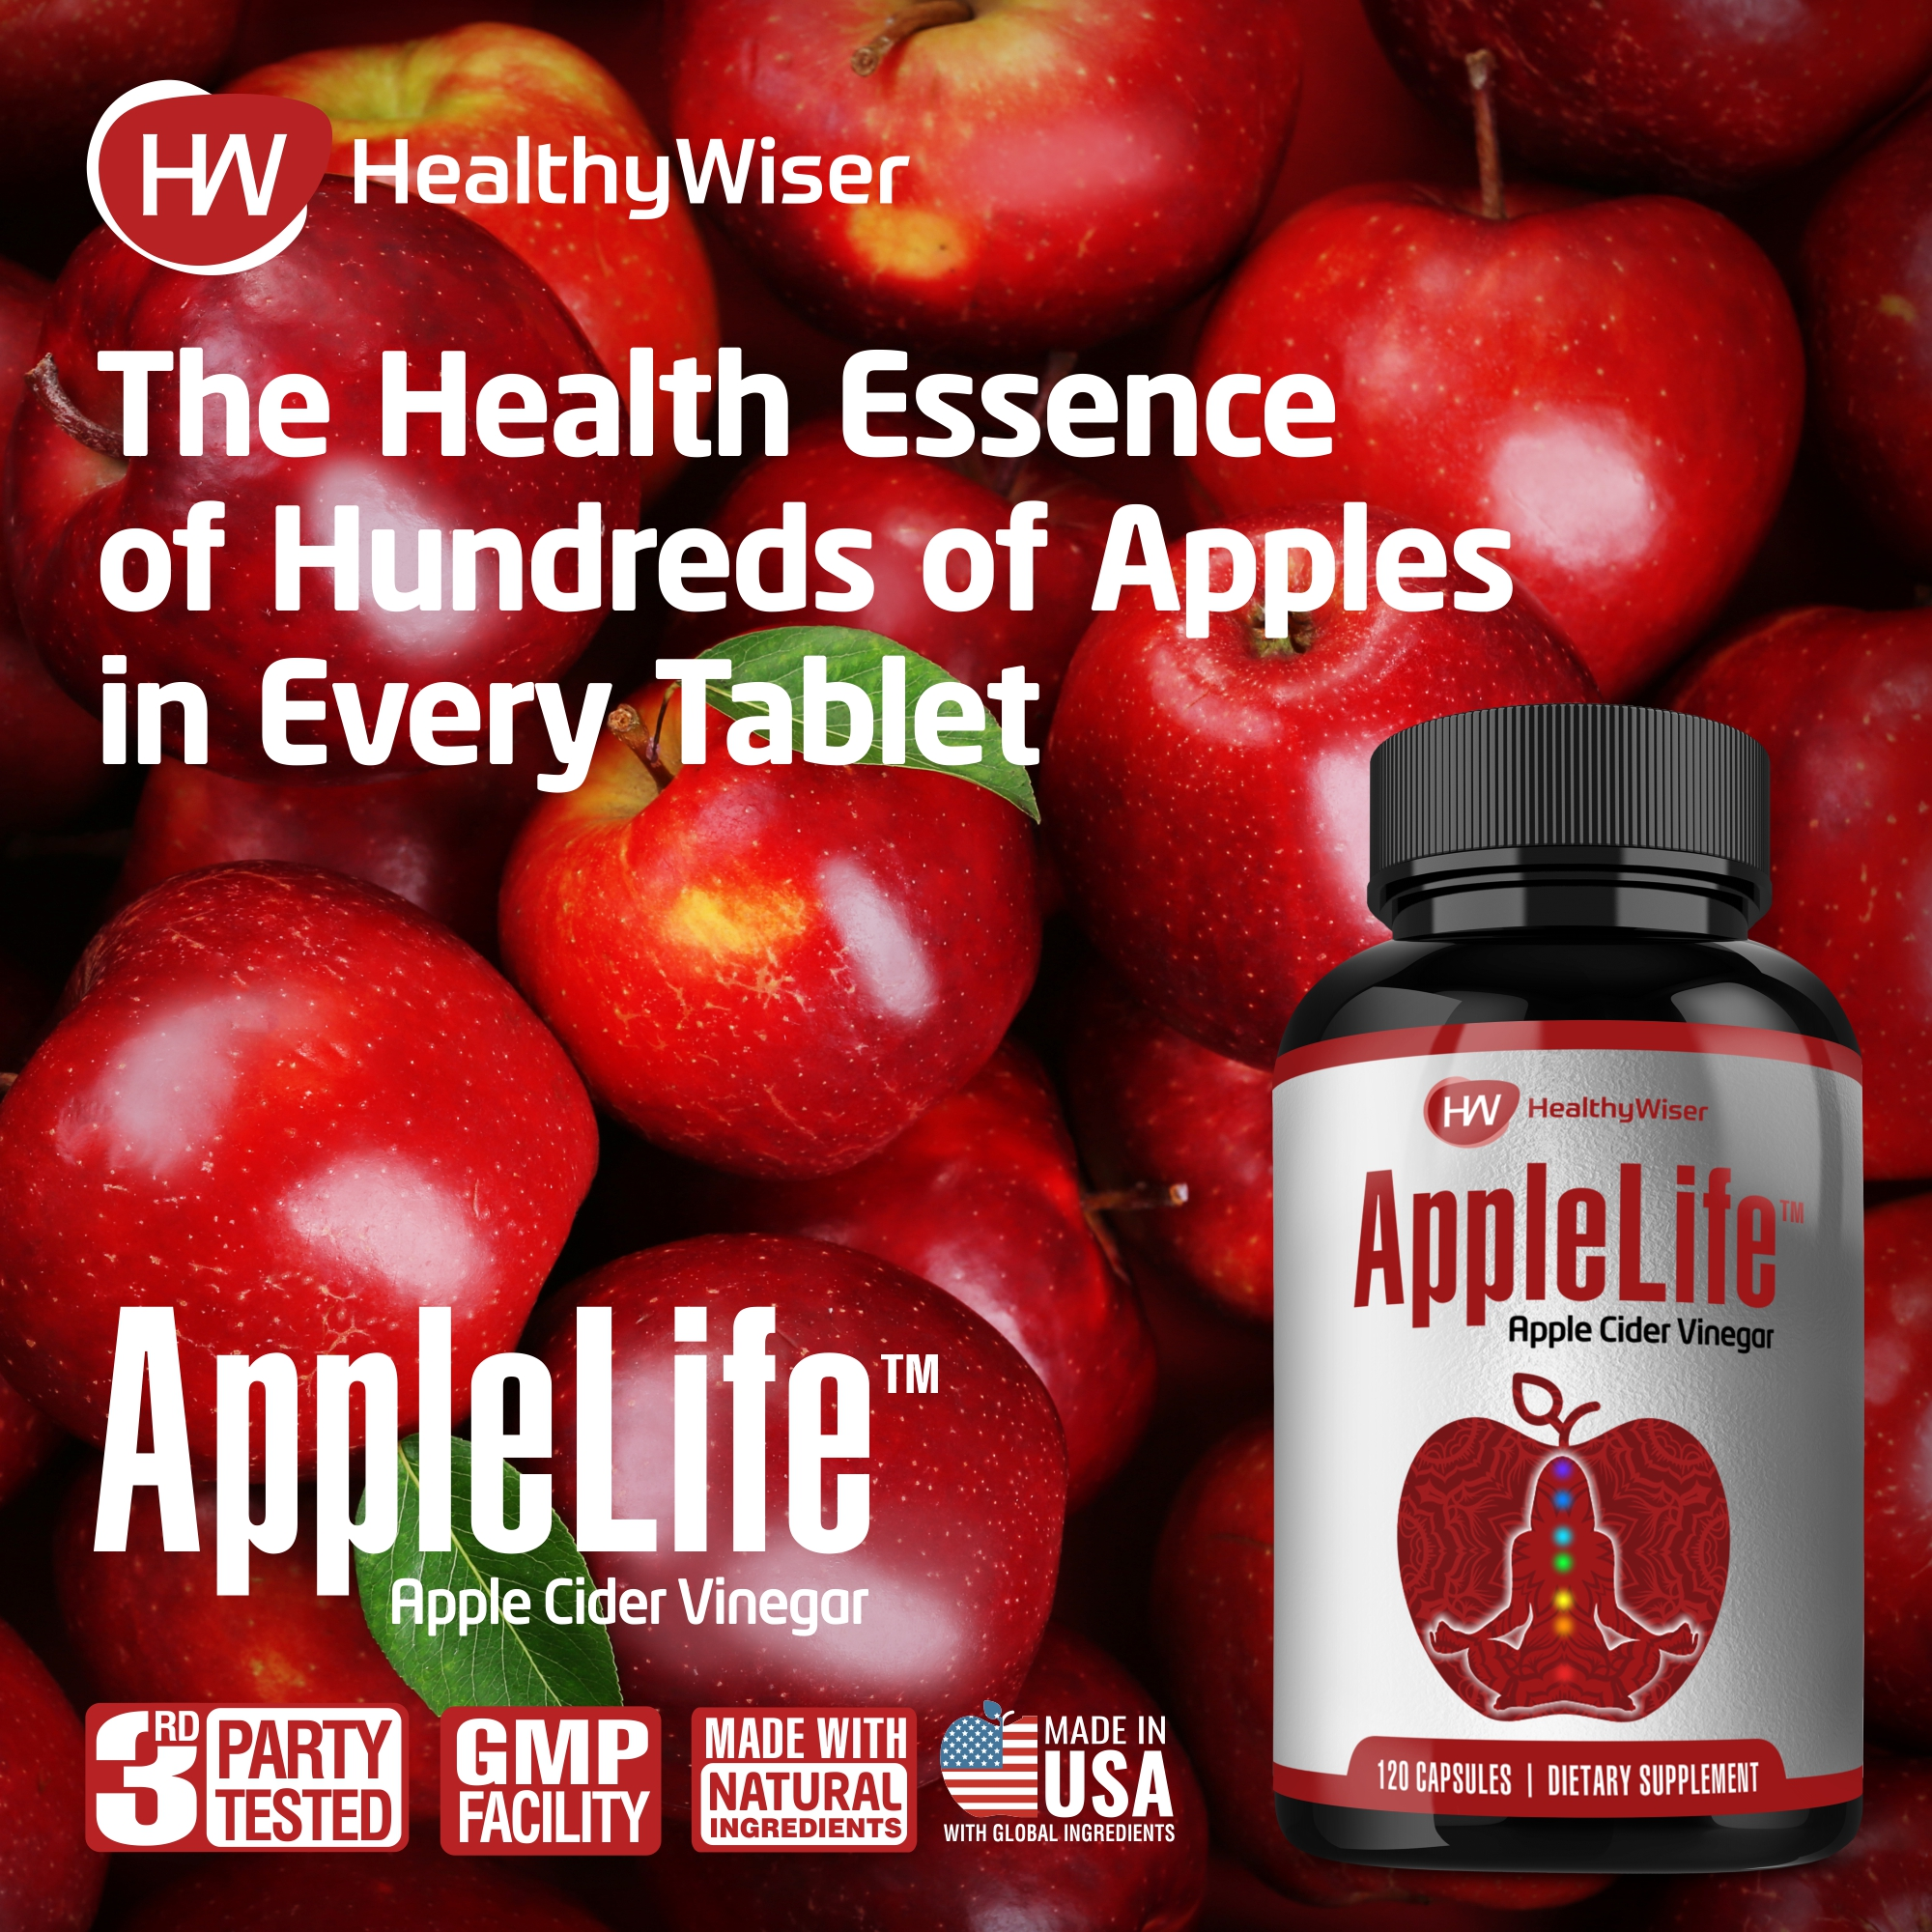 AppleLife™ Apple Cider Vinegar Capsules by HealthyWiser